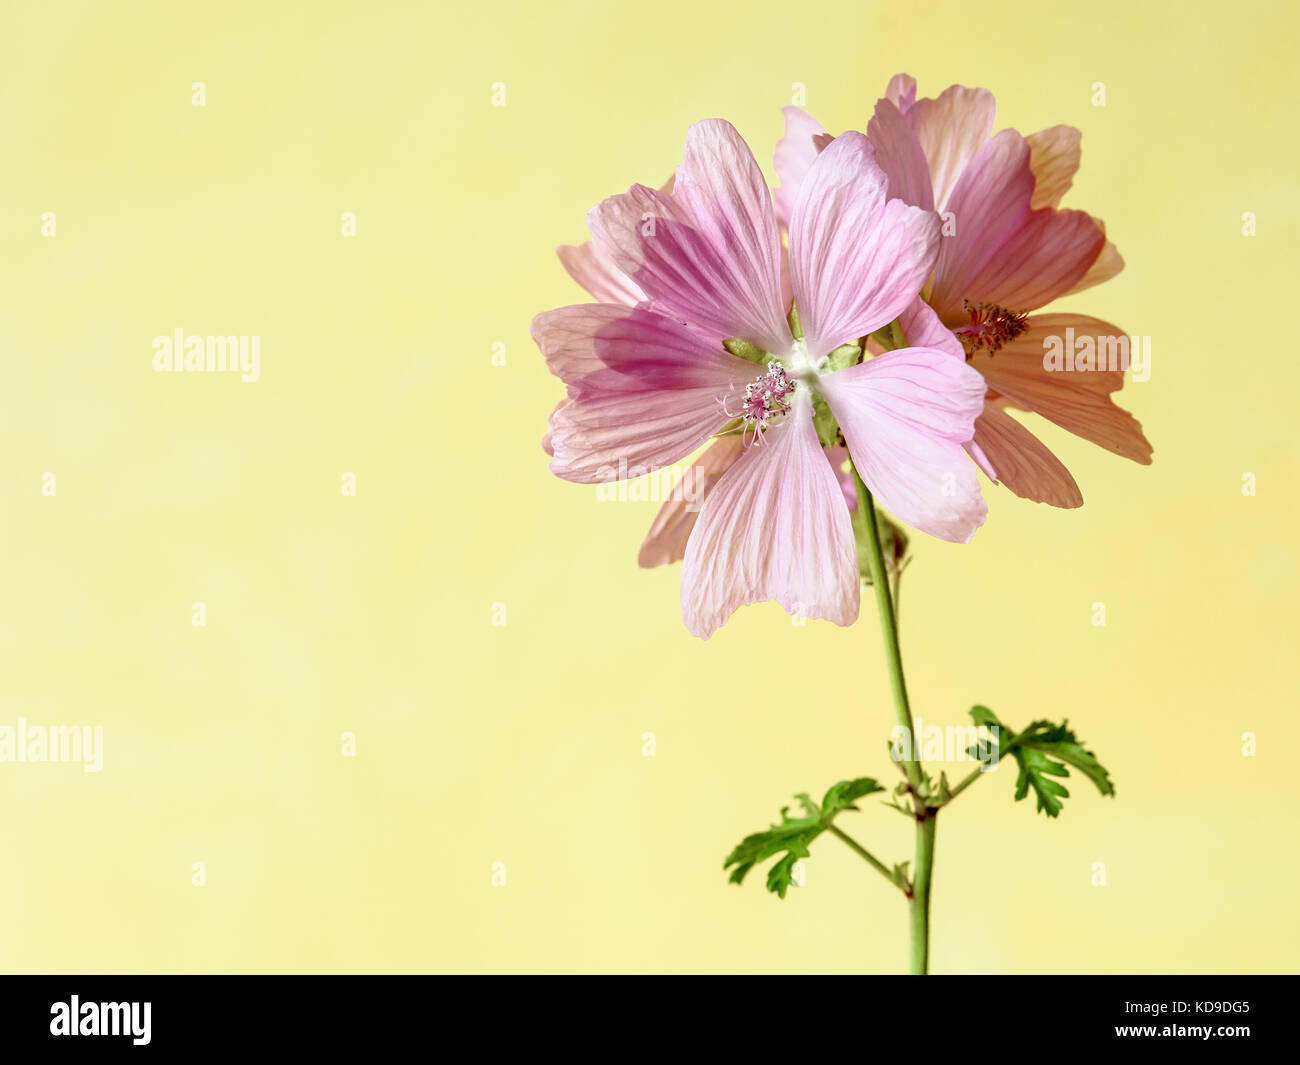 Pink Mallow Flowers With Five Petals On A Green Stalk With Two